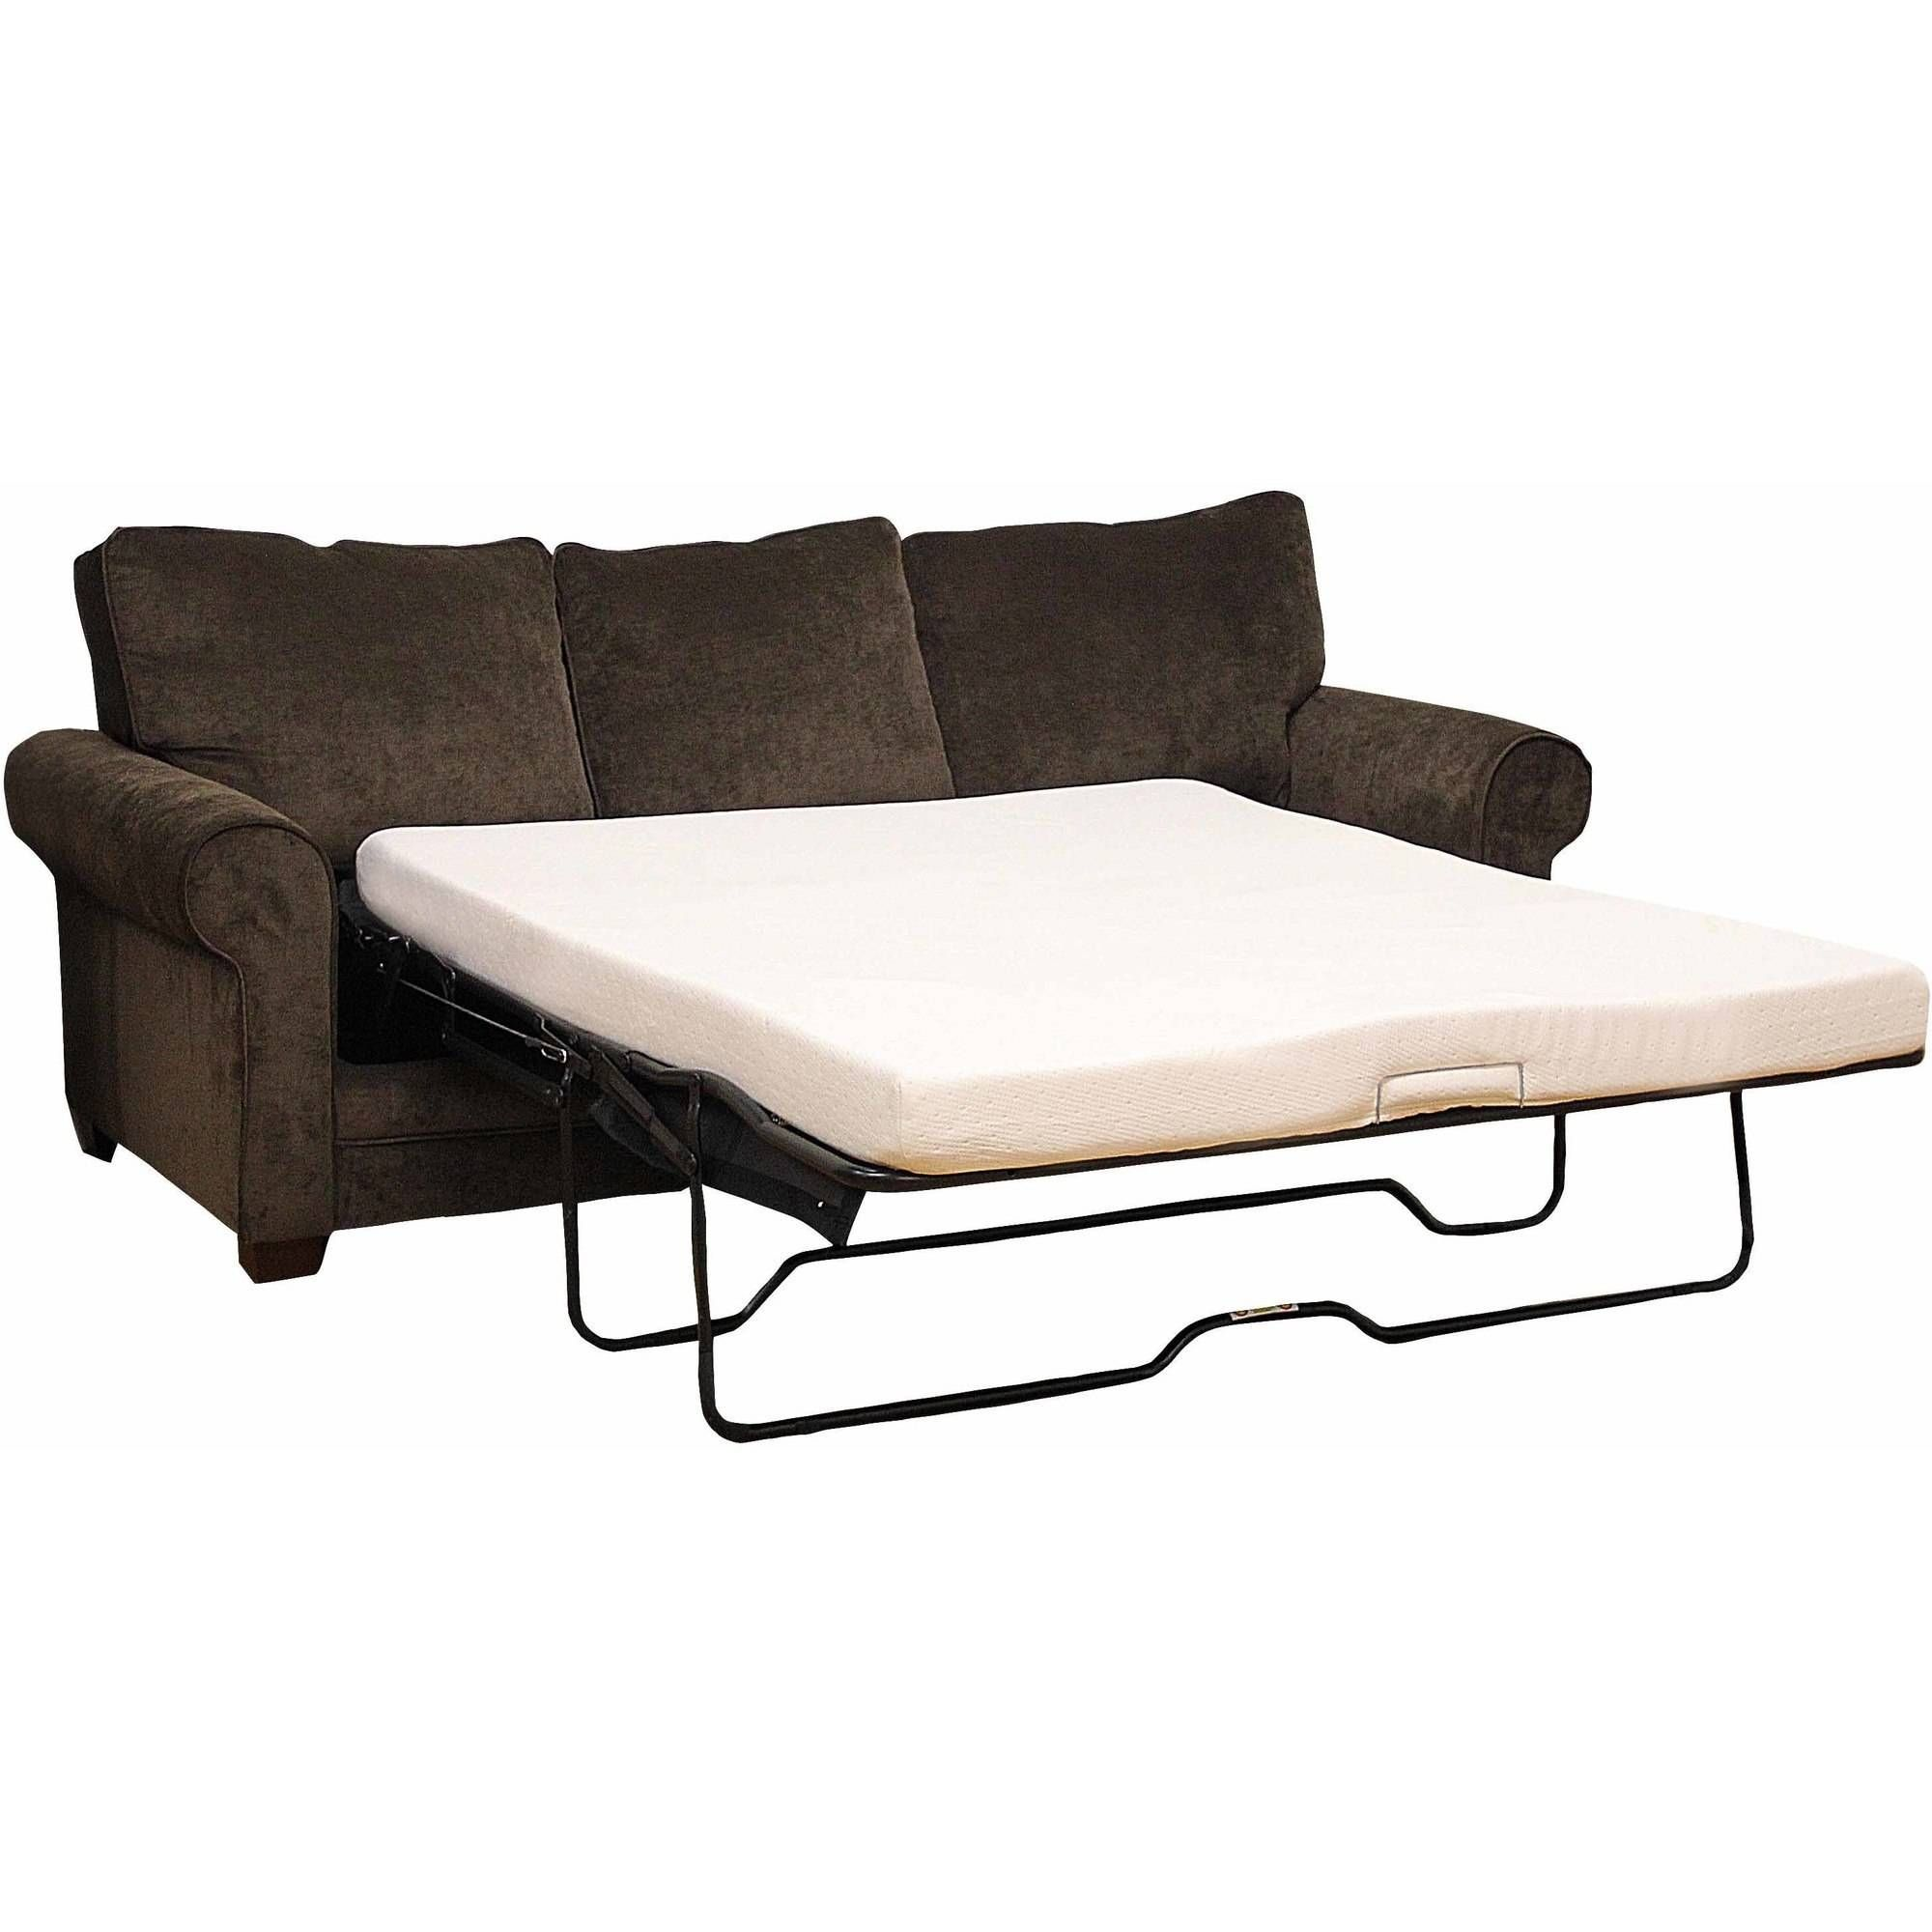 Rv Sofa Bed Mattress Pad Fold Out Couchpull